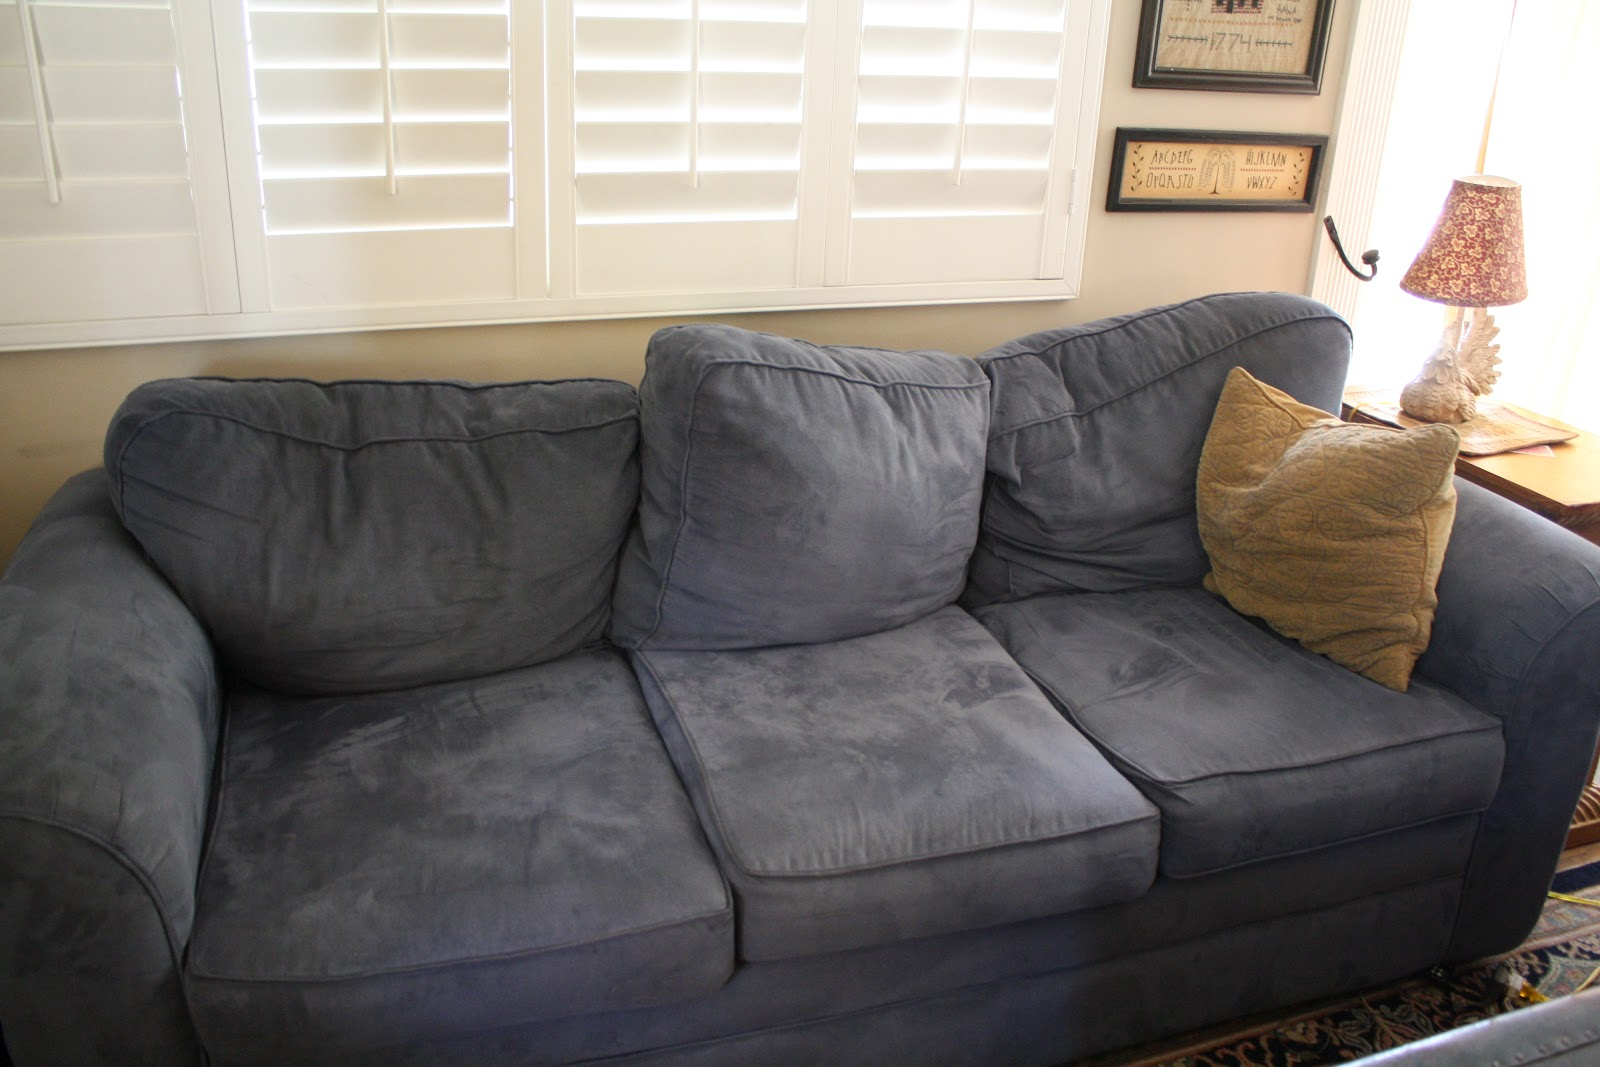 How To Refill Couch Cushions Ly